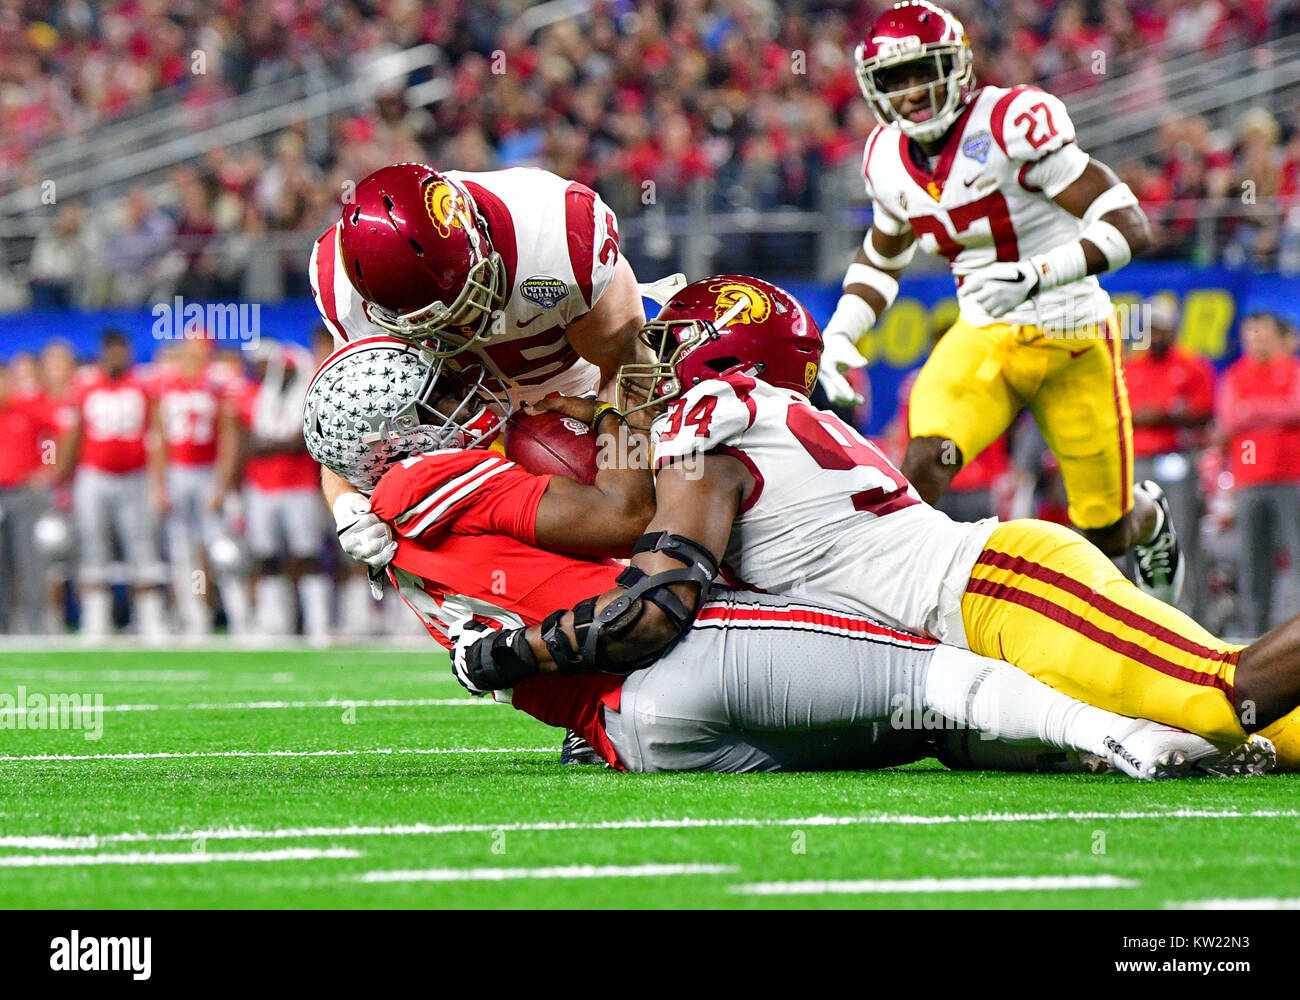 Arlington, Texas, USA. 29th December, 2017. Ohio State Buckeyes quarterback J.T. Barrett (16) is sacked by USC Trojans - Stock Image